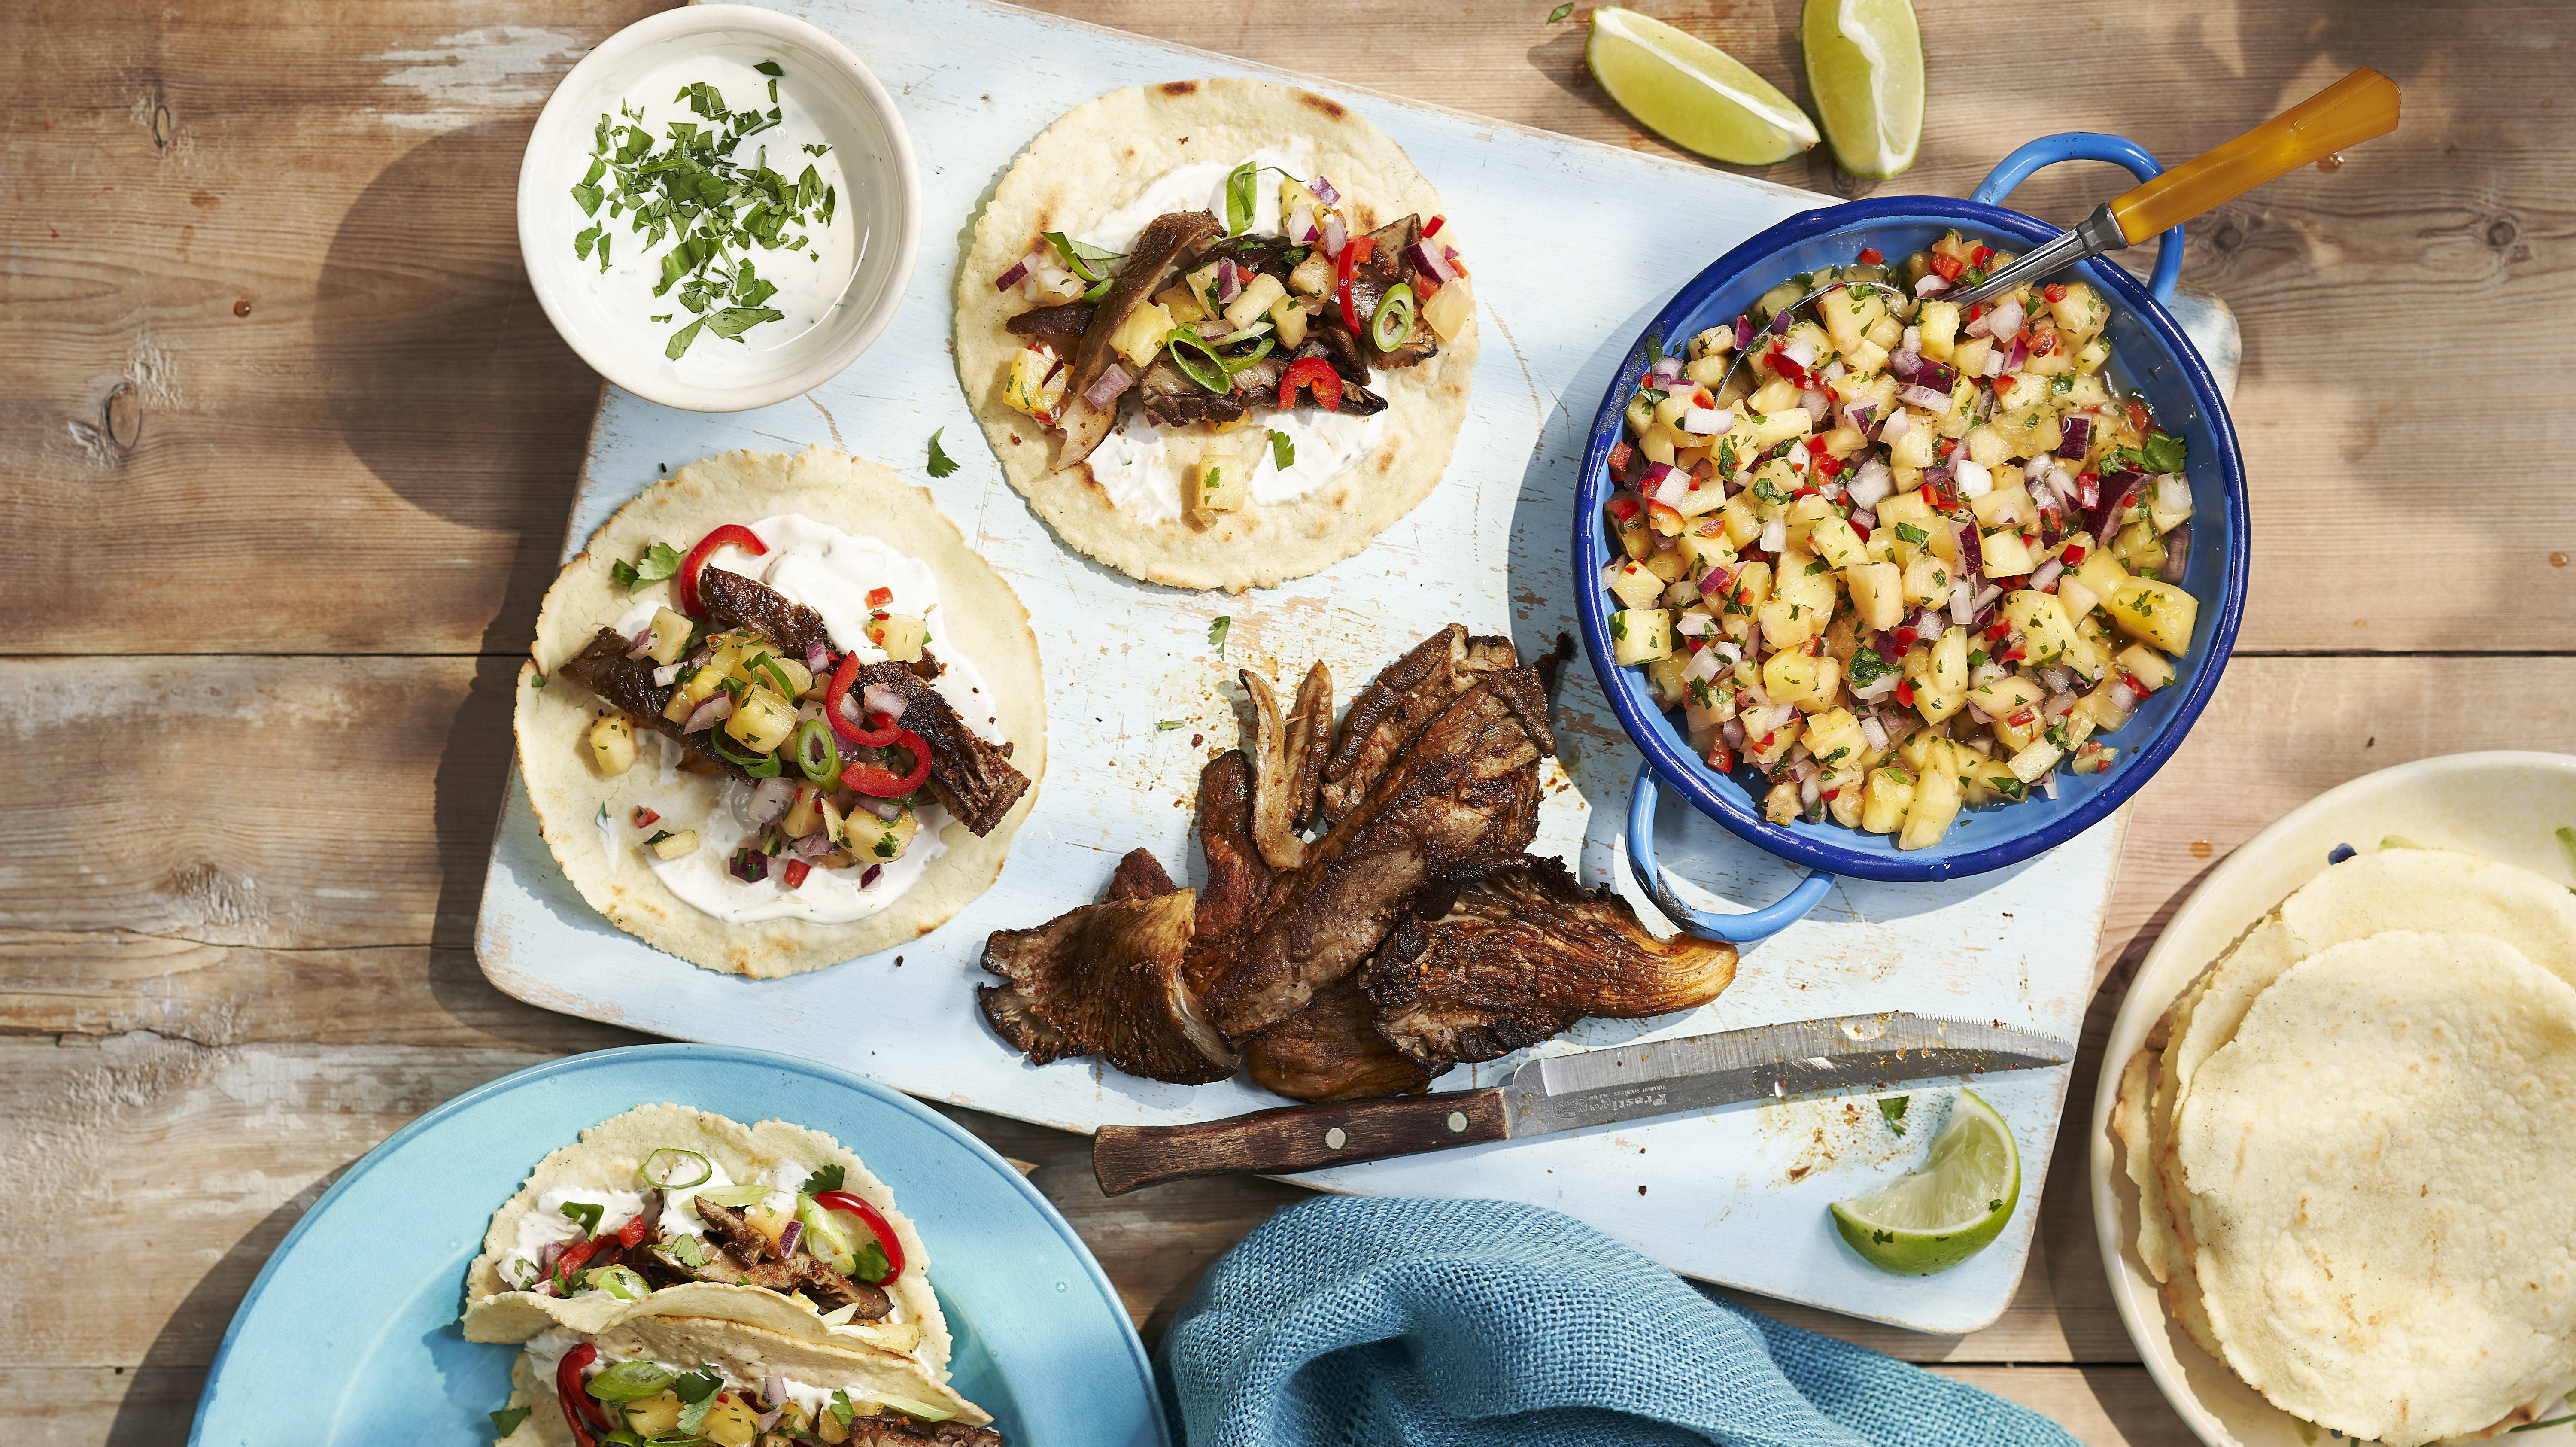 Serve up an authentic taste of Mexico with these vegan mushroom tacos with pineapple